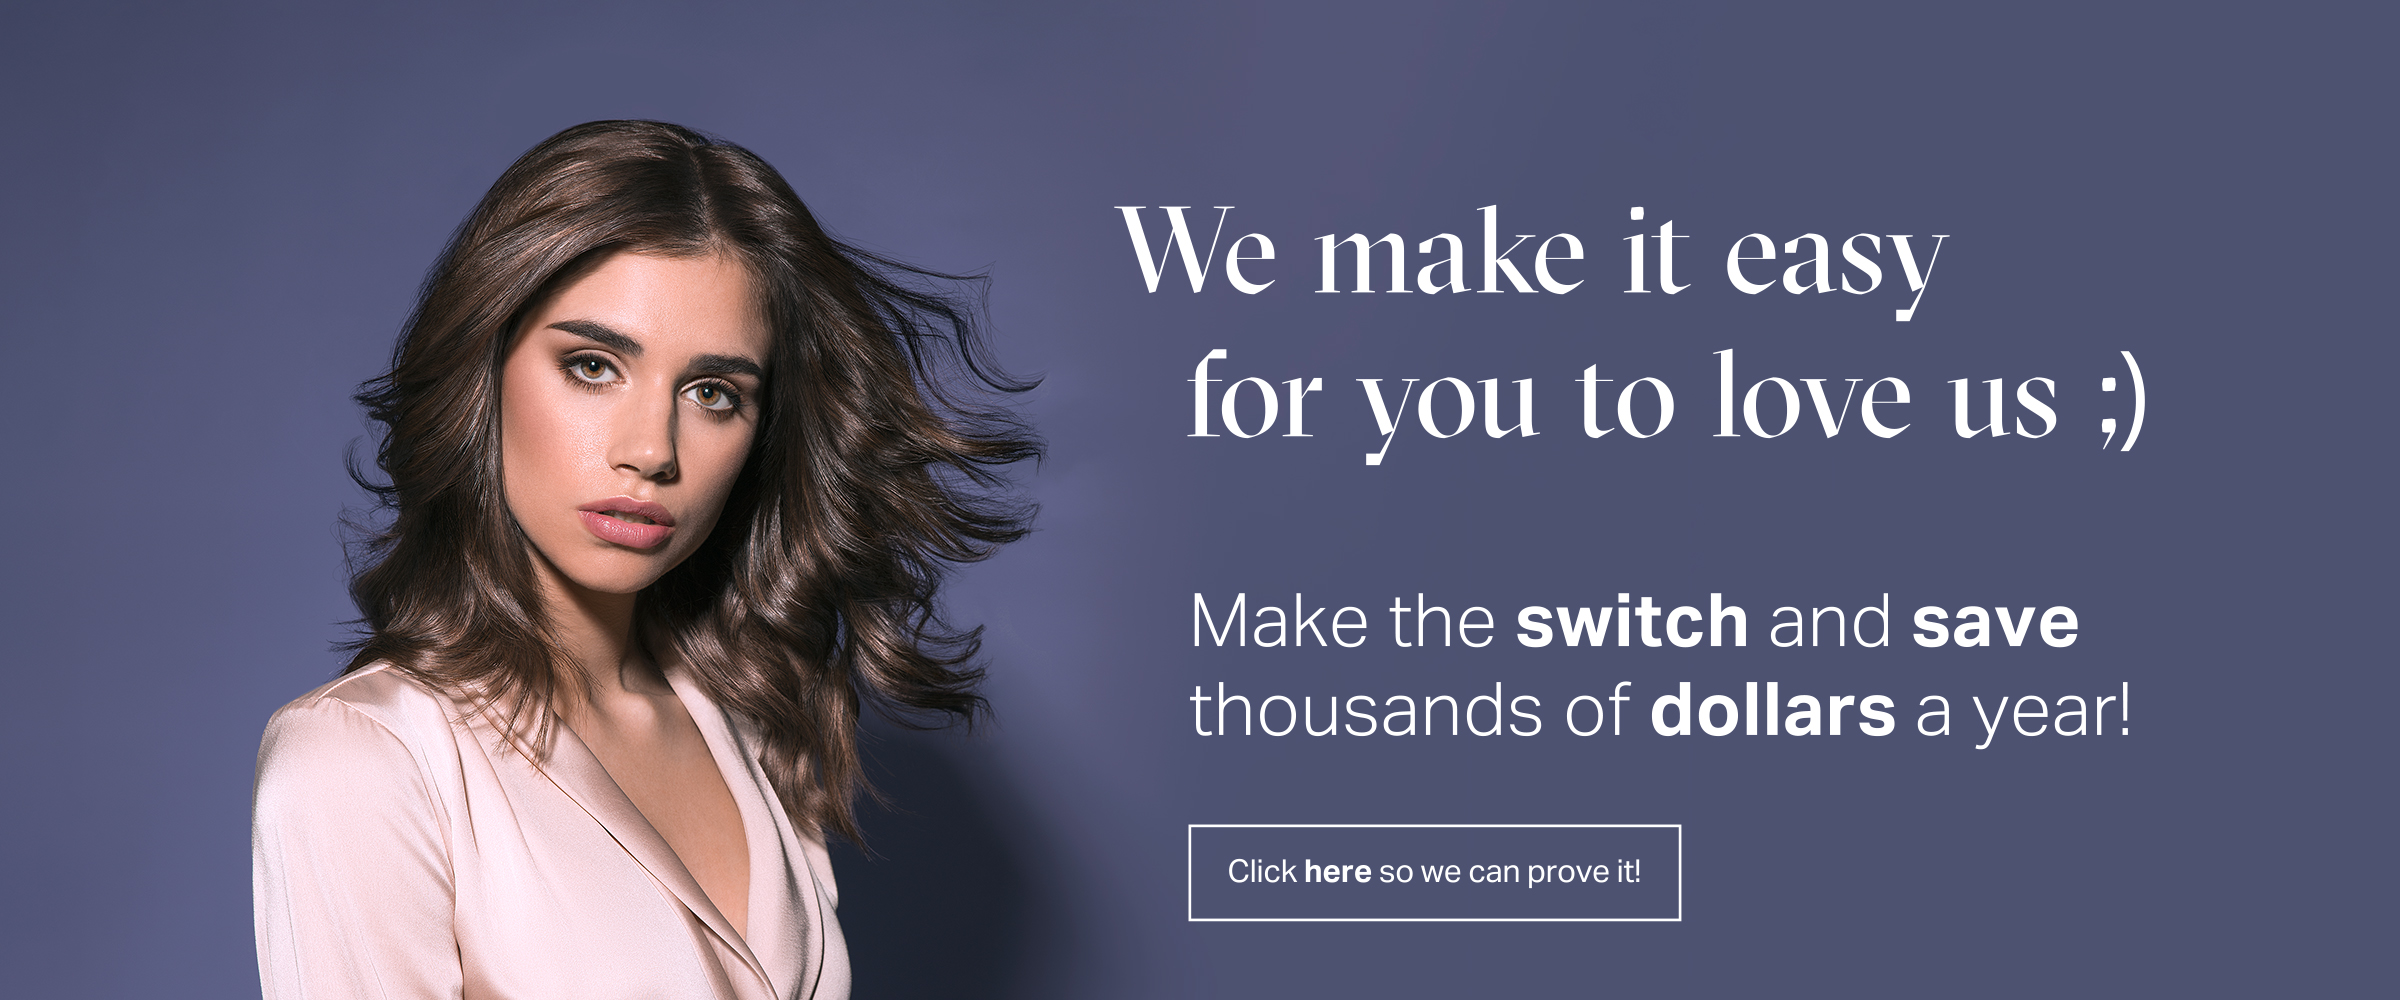 hair model with text reading: we make it easy for you to love us. Make the switch and save thousands of dollars a year. Click here so we can prove it!